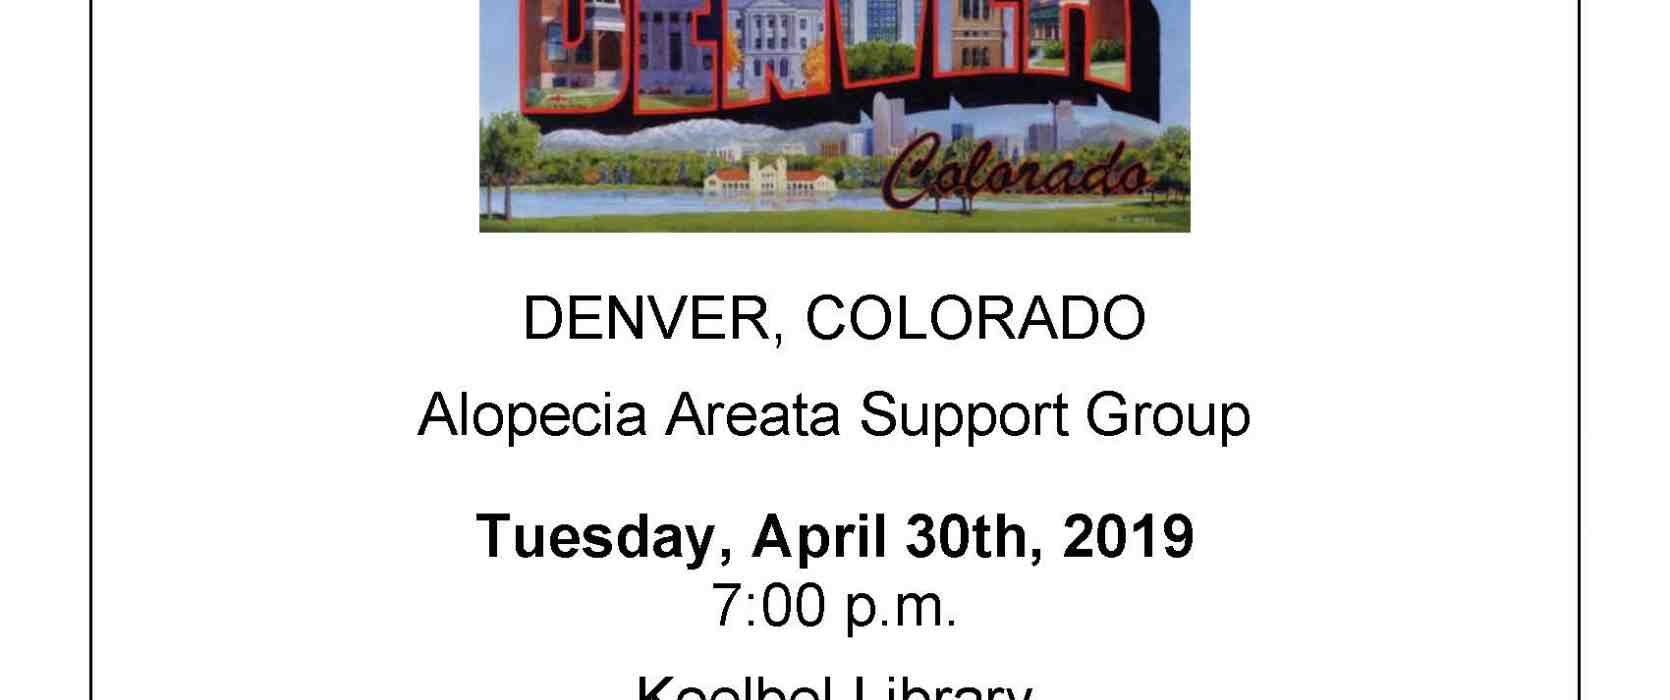 Denver Co Alopecia Areata Support Meeting National